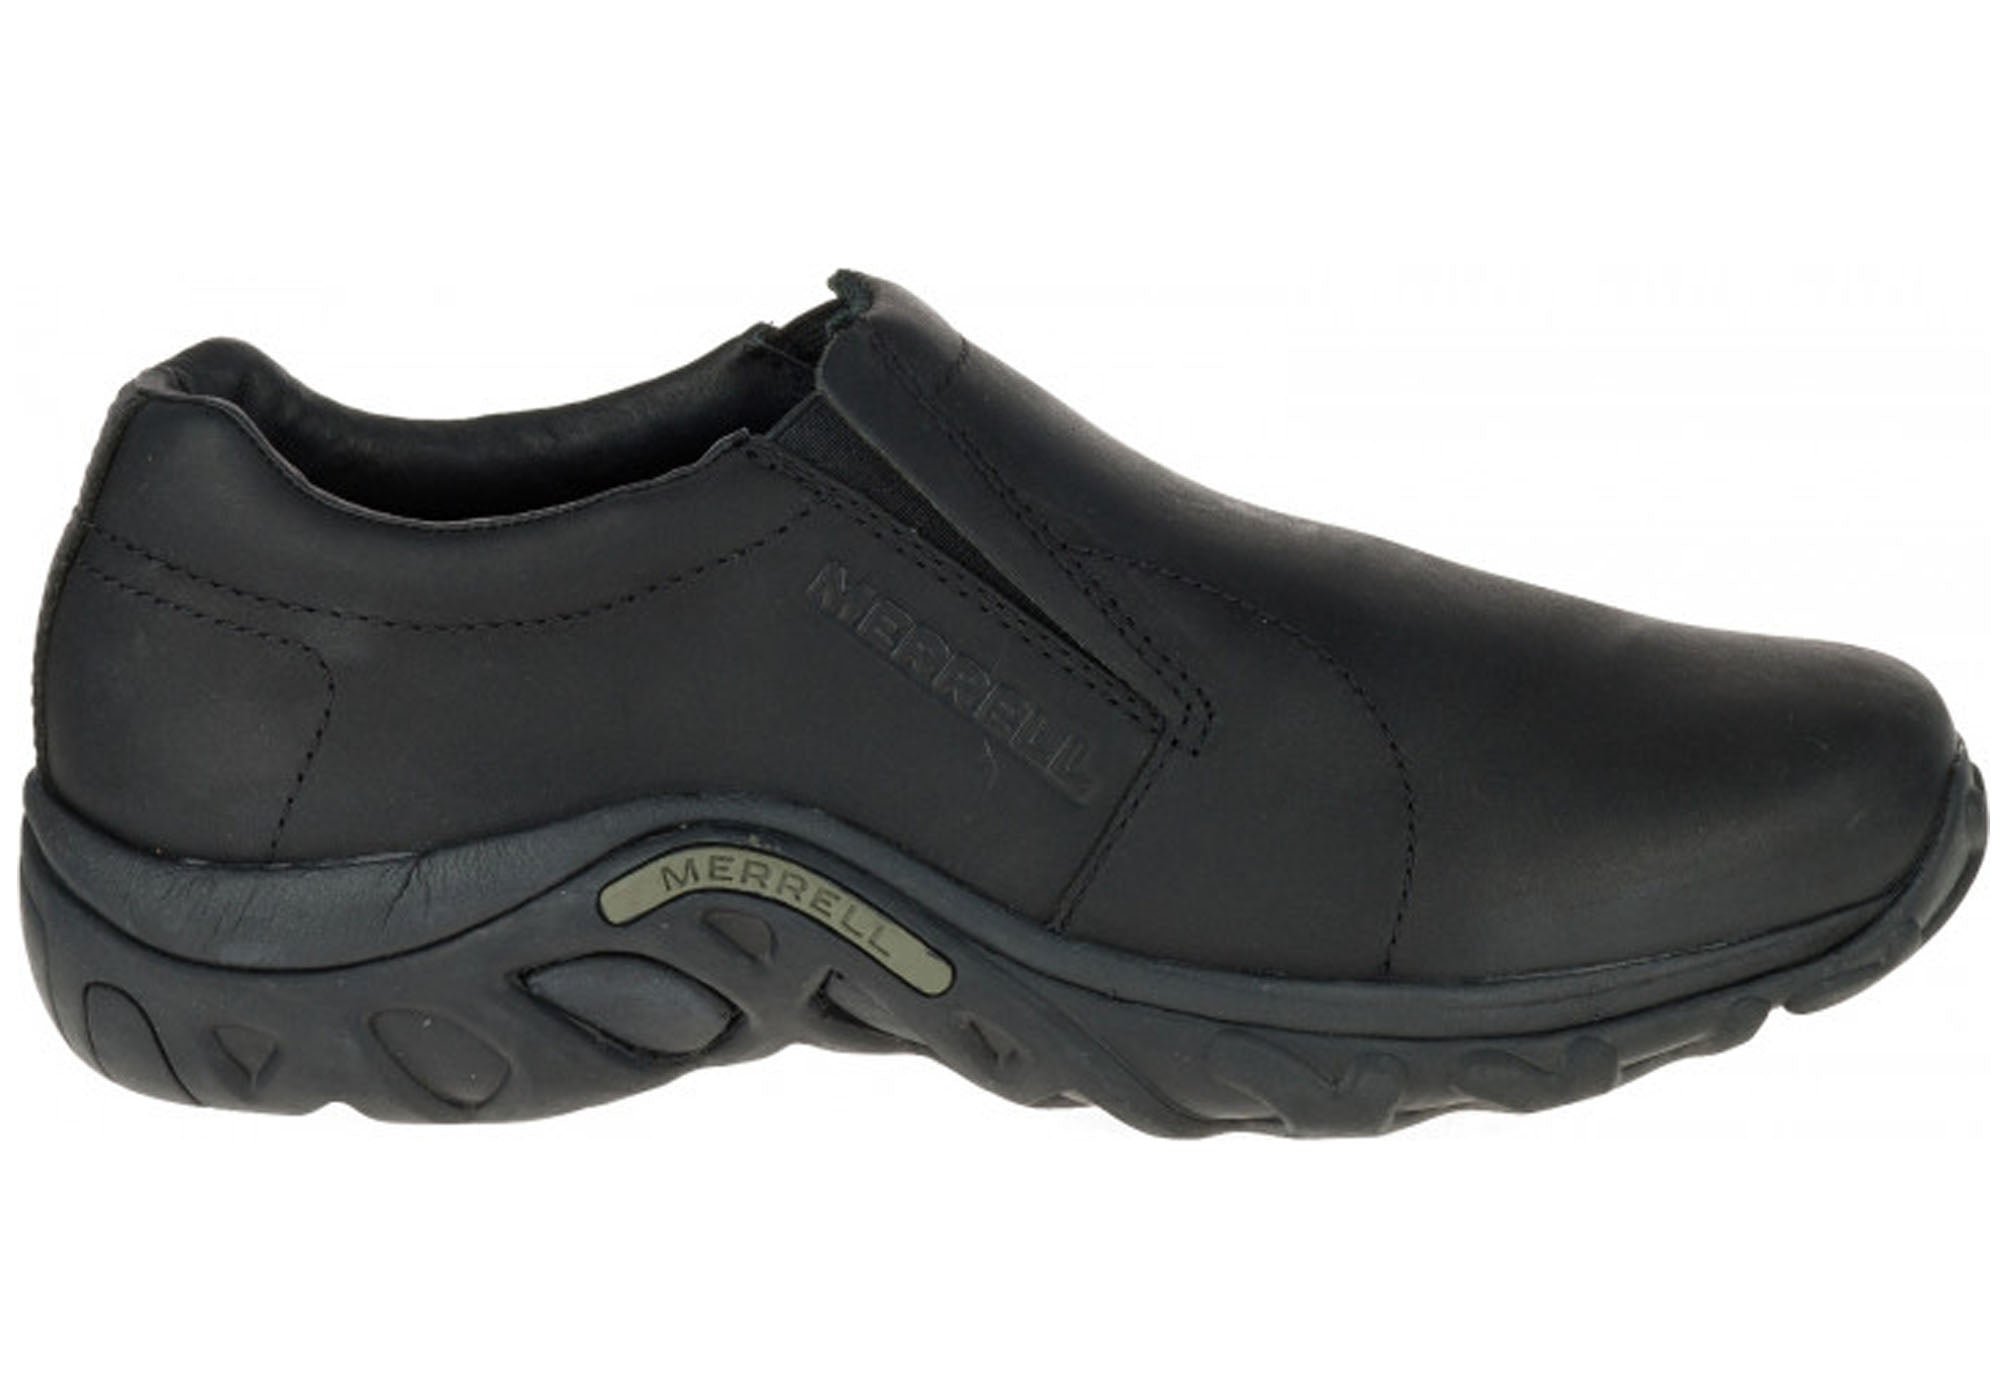 7aa7f967bf23 Home Merrell Mens Jungle Moc Black Leather Slip On Comfortable Casual Shoes.  Black Leather ...